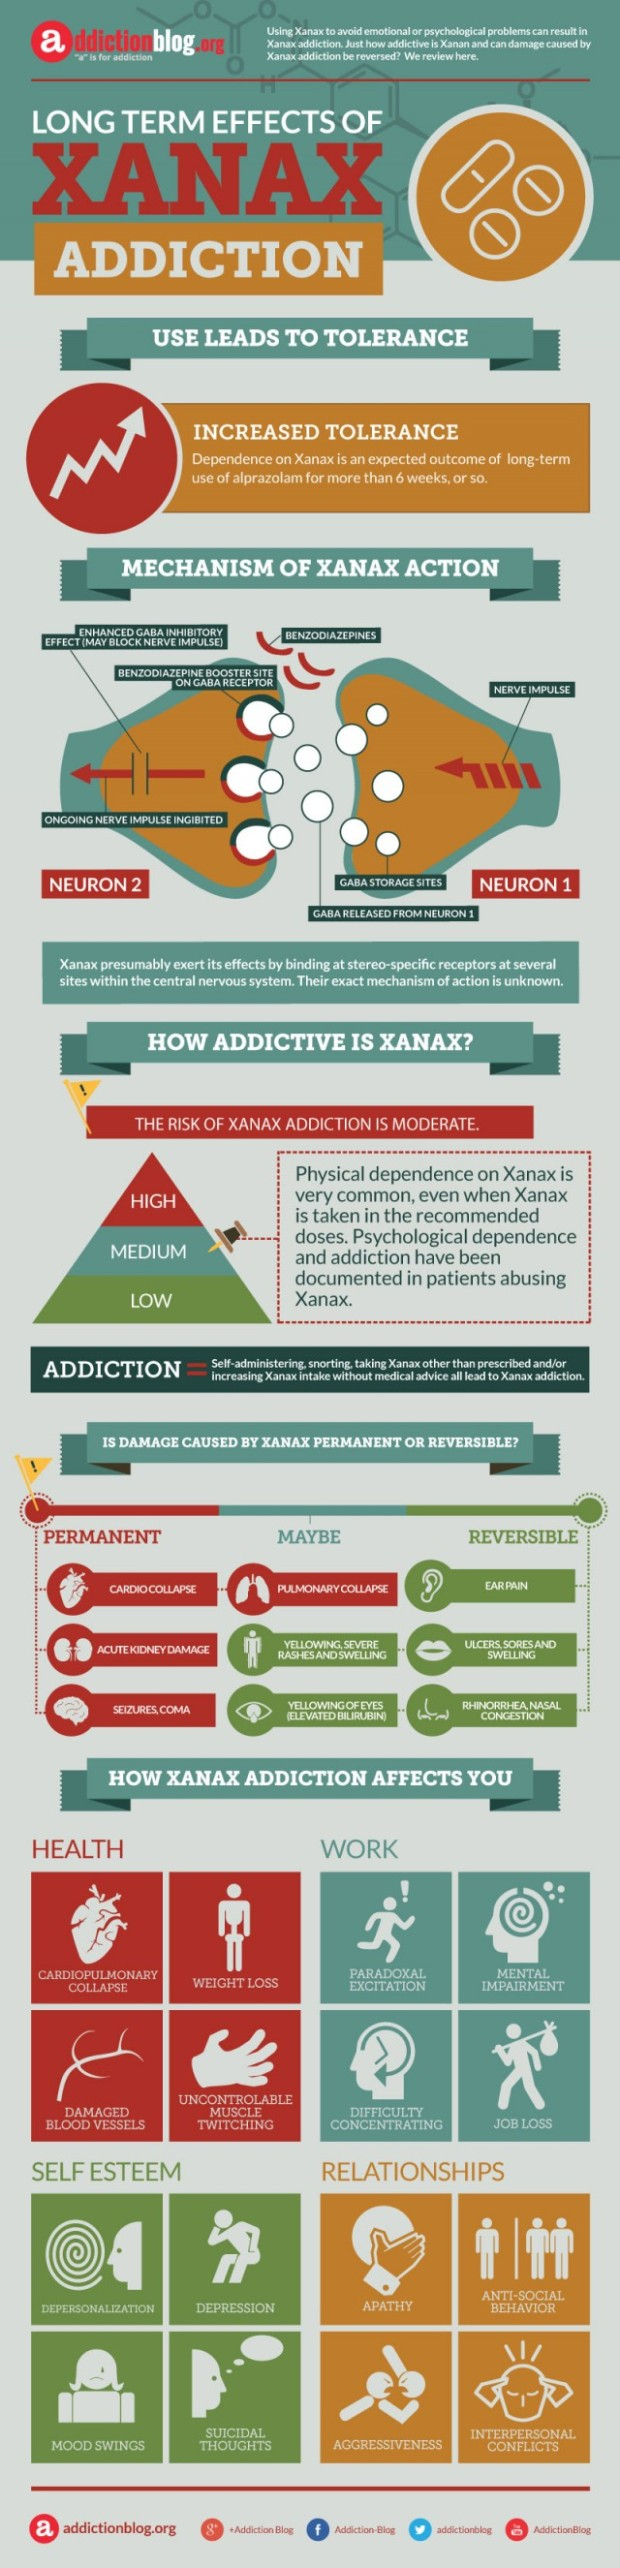 Xanax addiction symptoms: Long term effects infographic